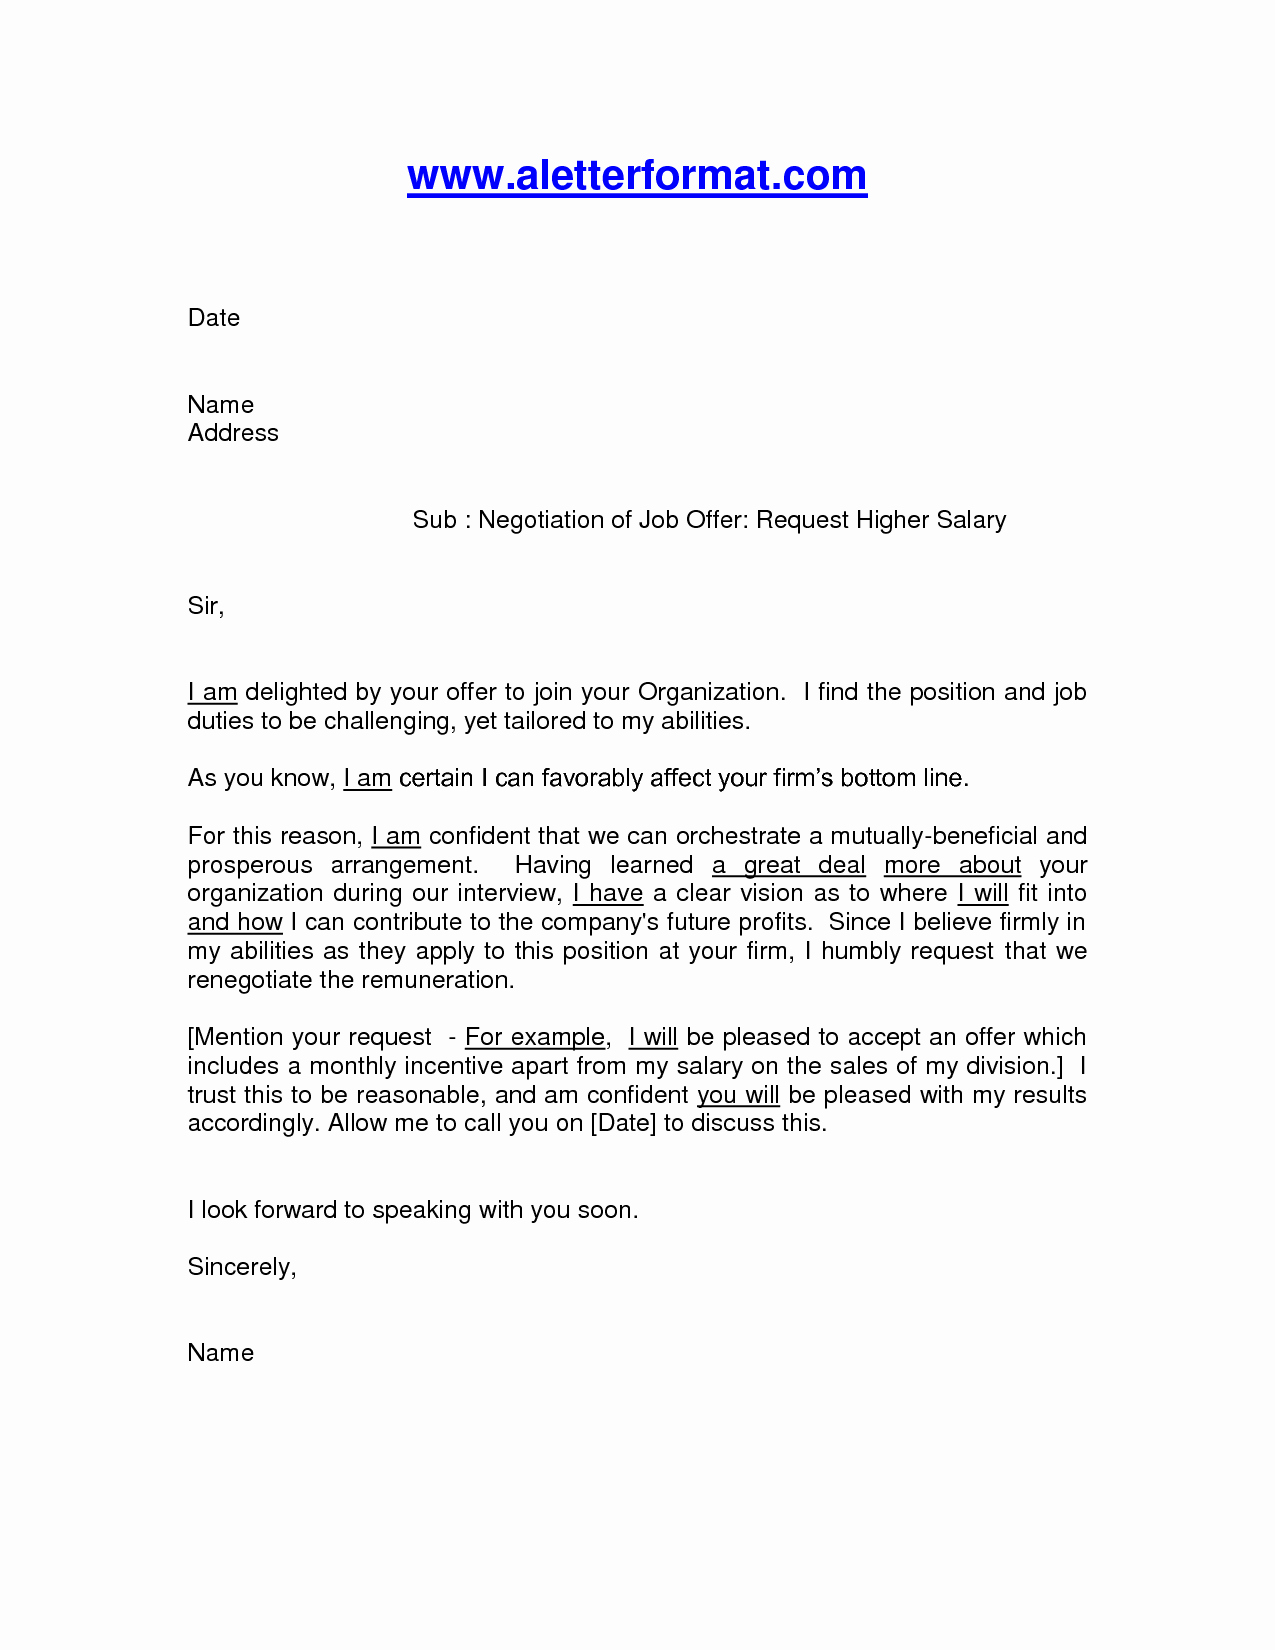 Salary Negotiation Letter to Employer Inspirational Salary Negotiation Letter